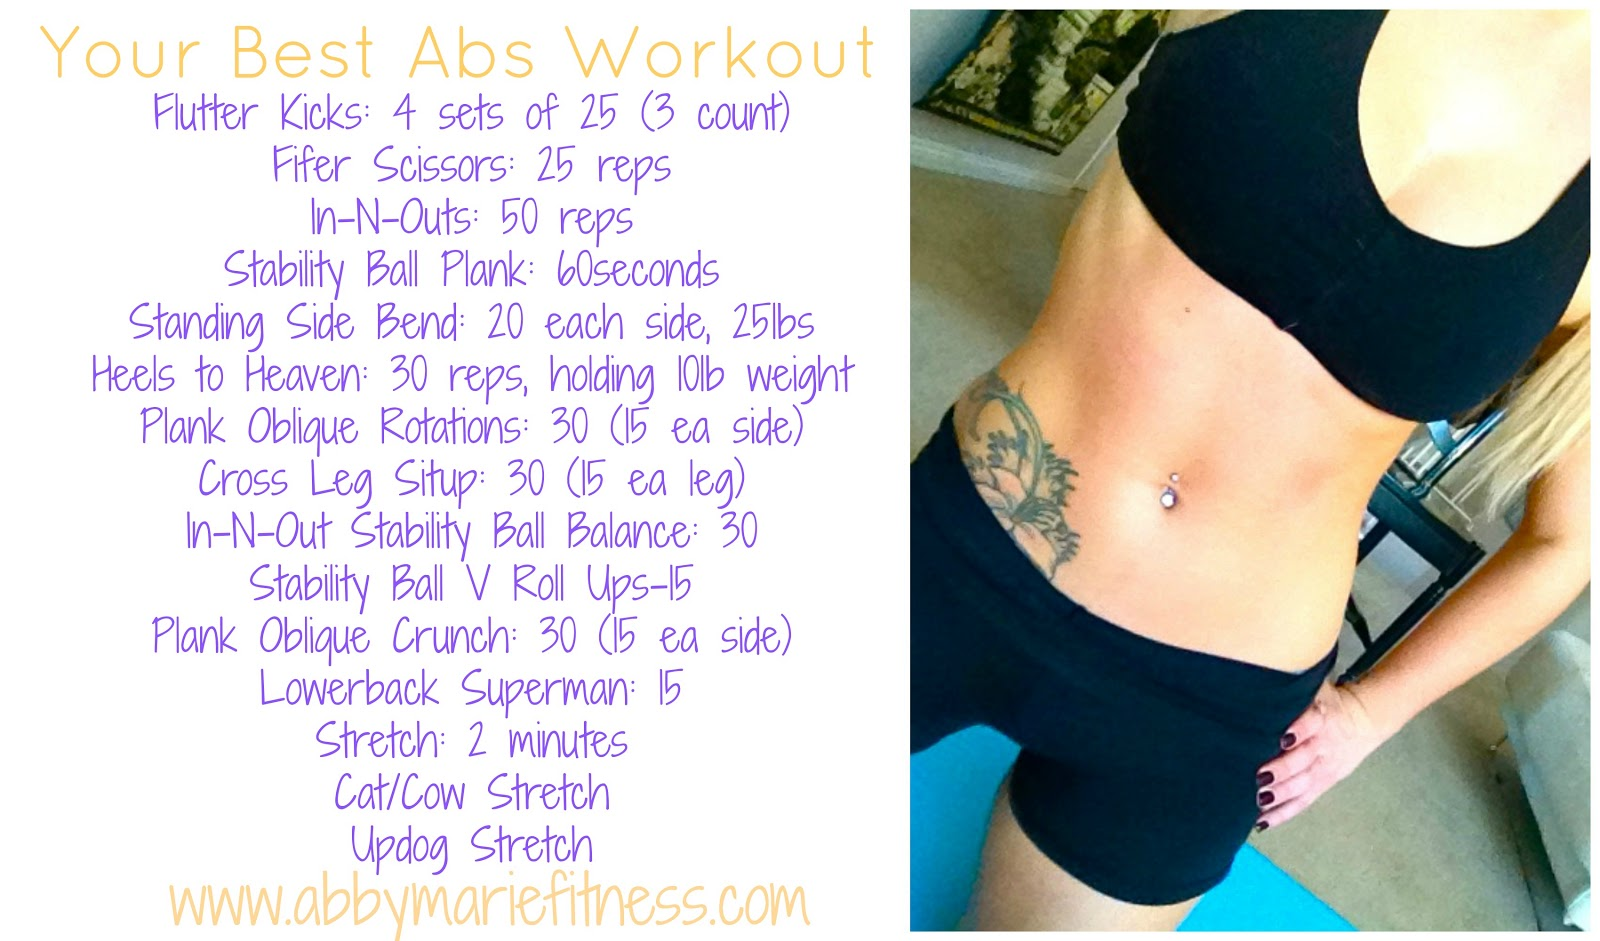 Your Best Abs Workout